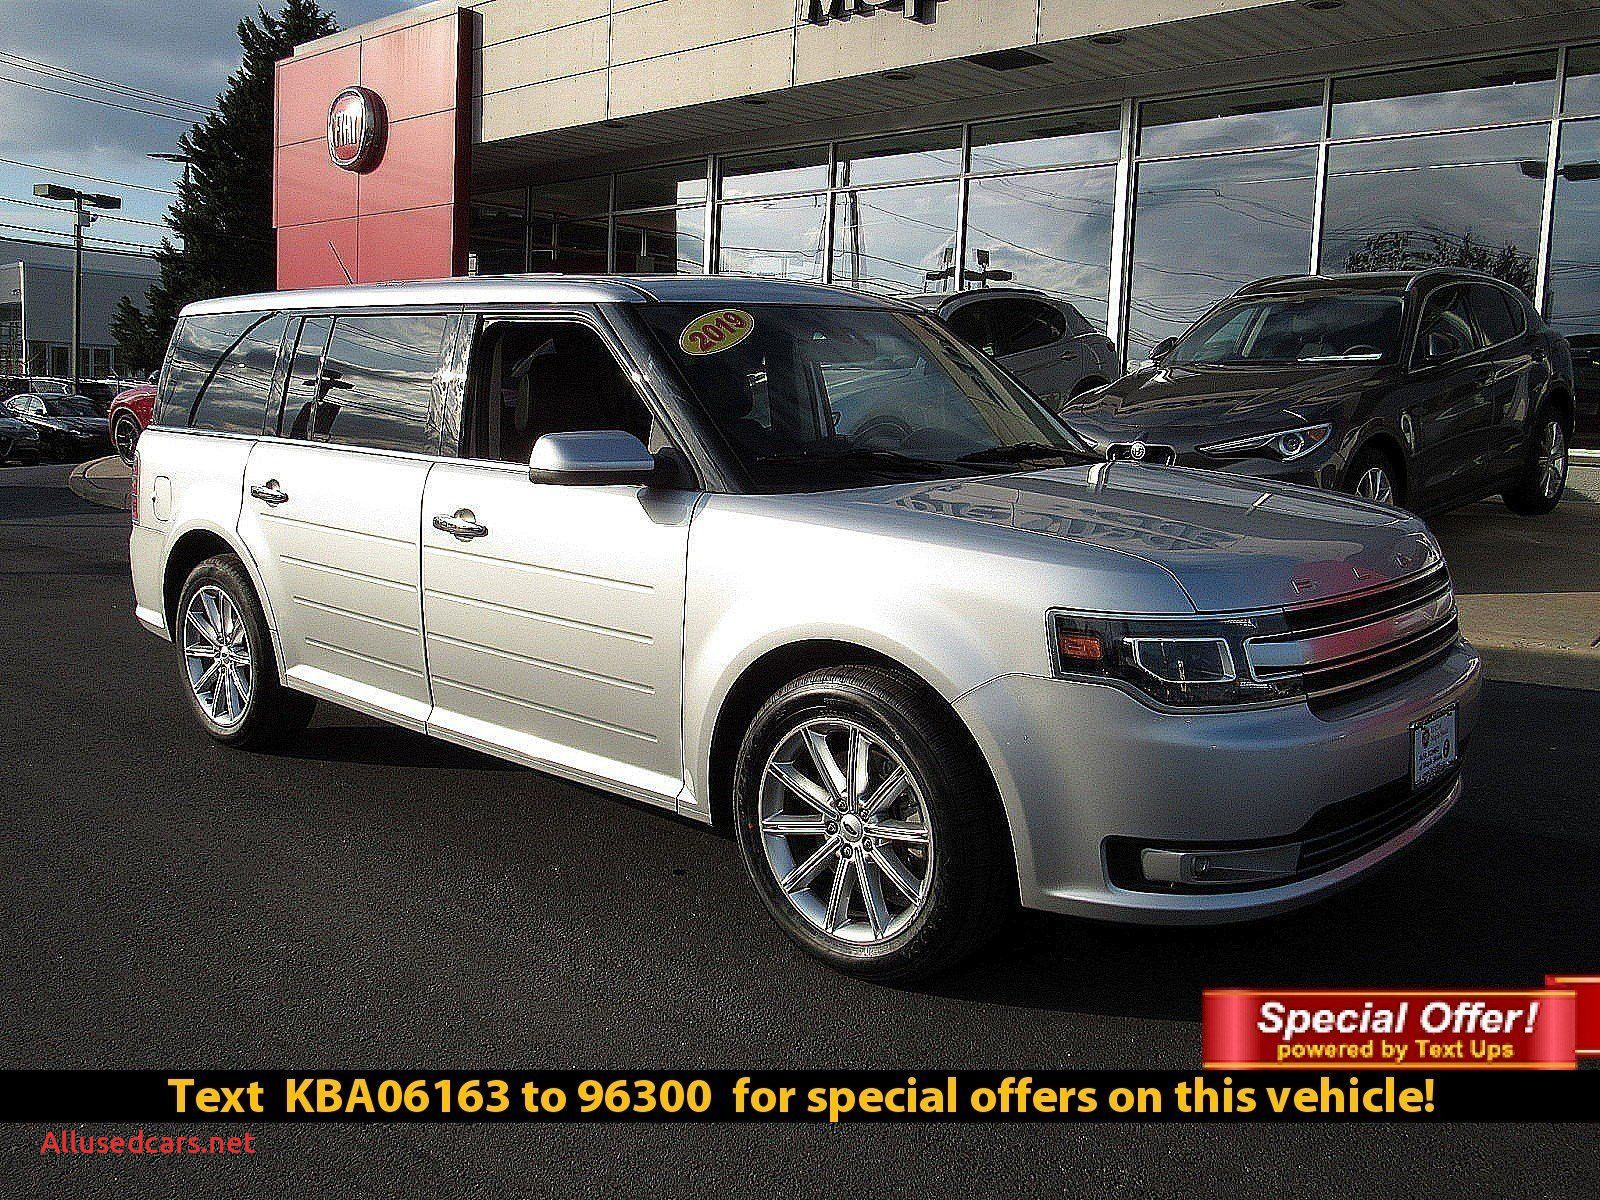 Ford Flex Lease Inspirational Used 2019 Ford Flex Limited In 2020 Ford Flex 2019 Ford Ford